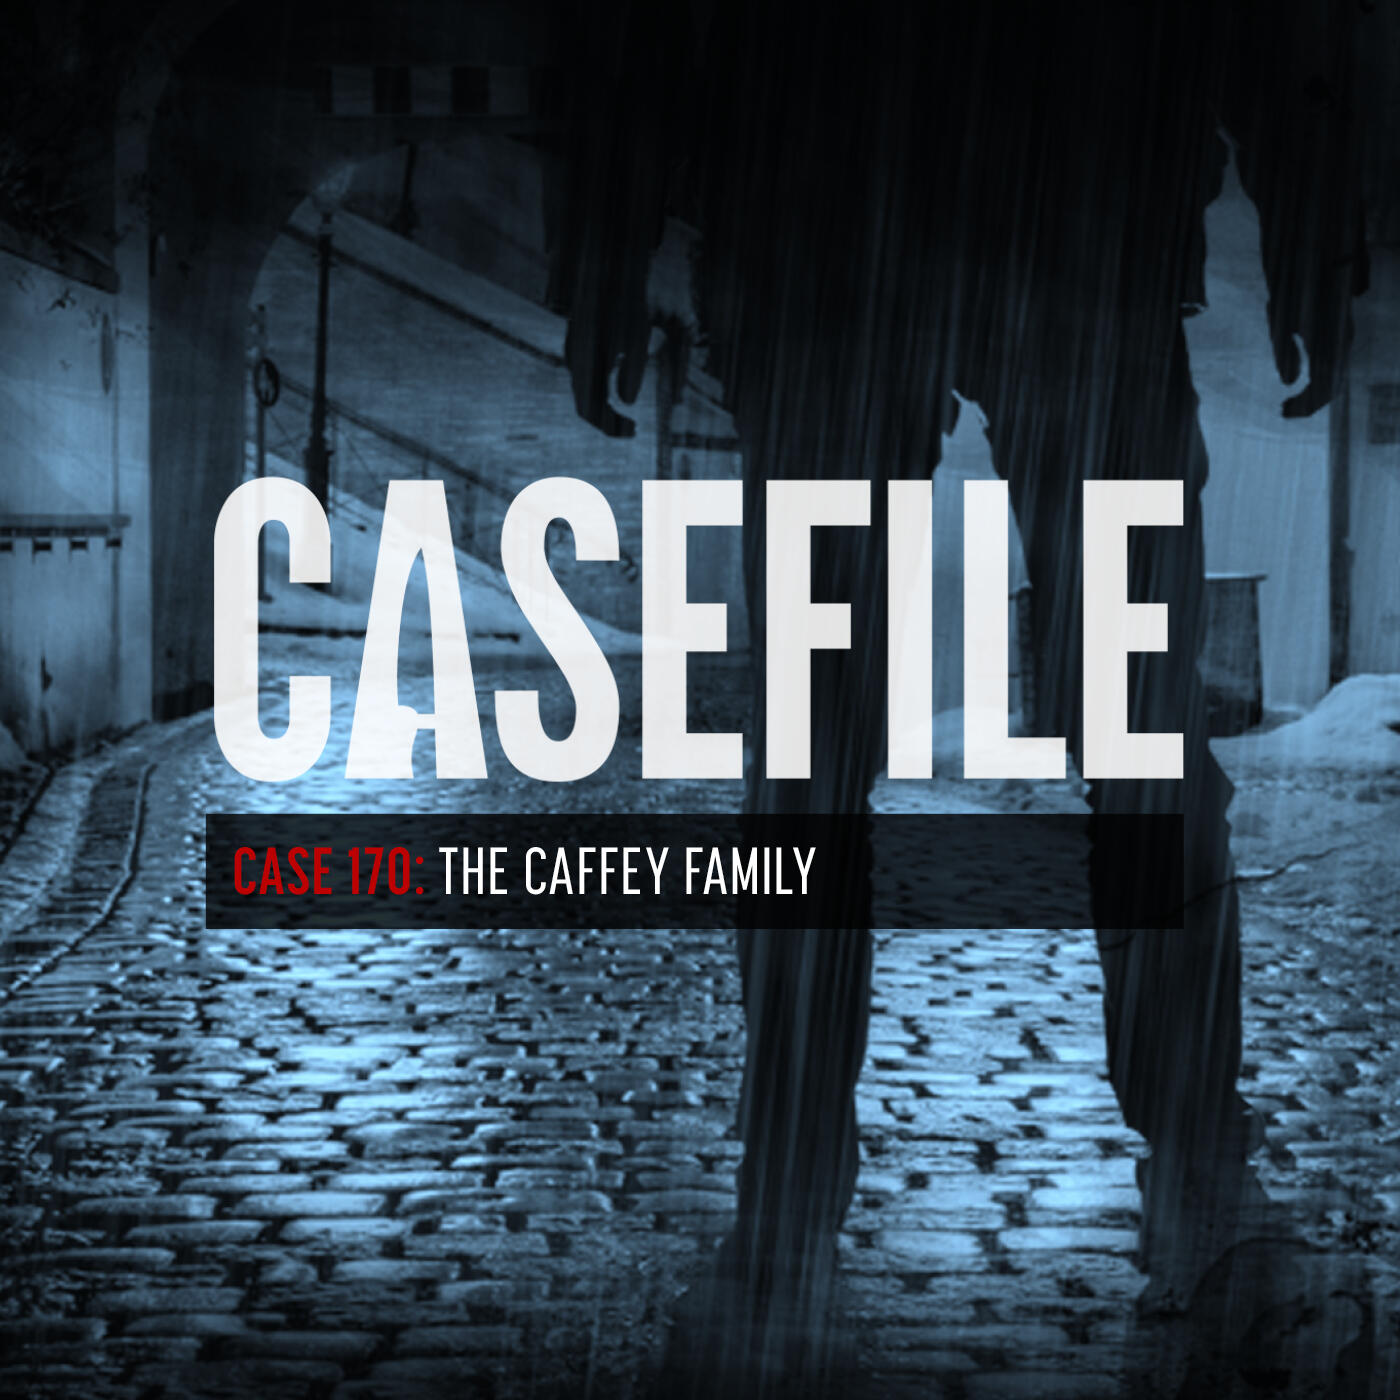 Case 170: The Caffey Family